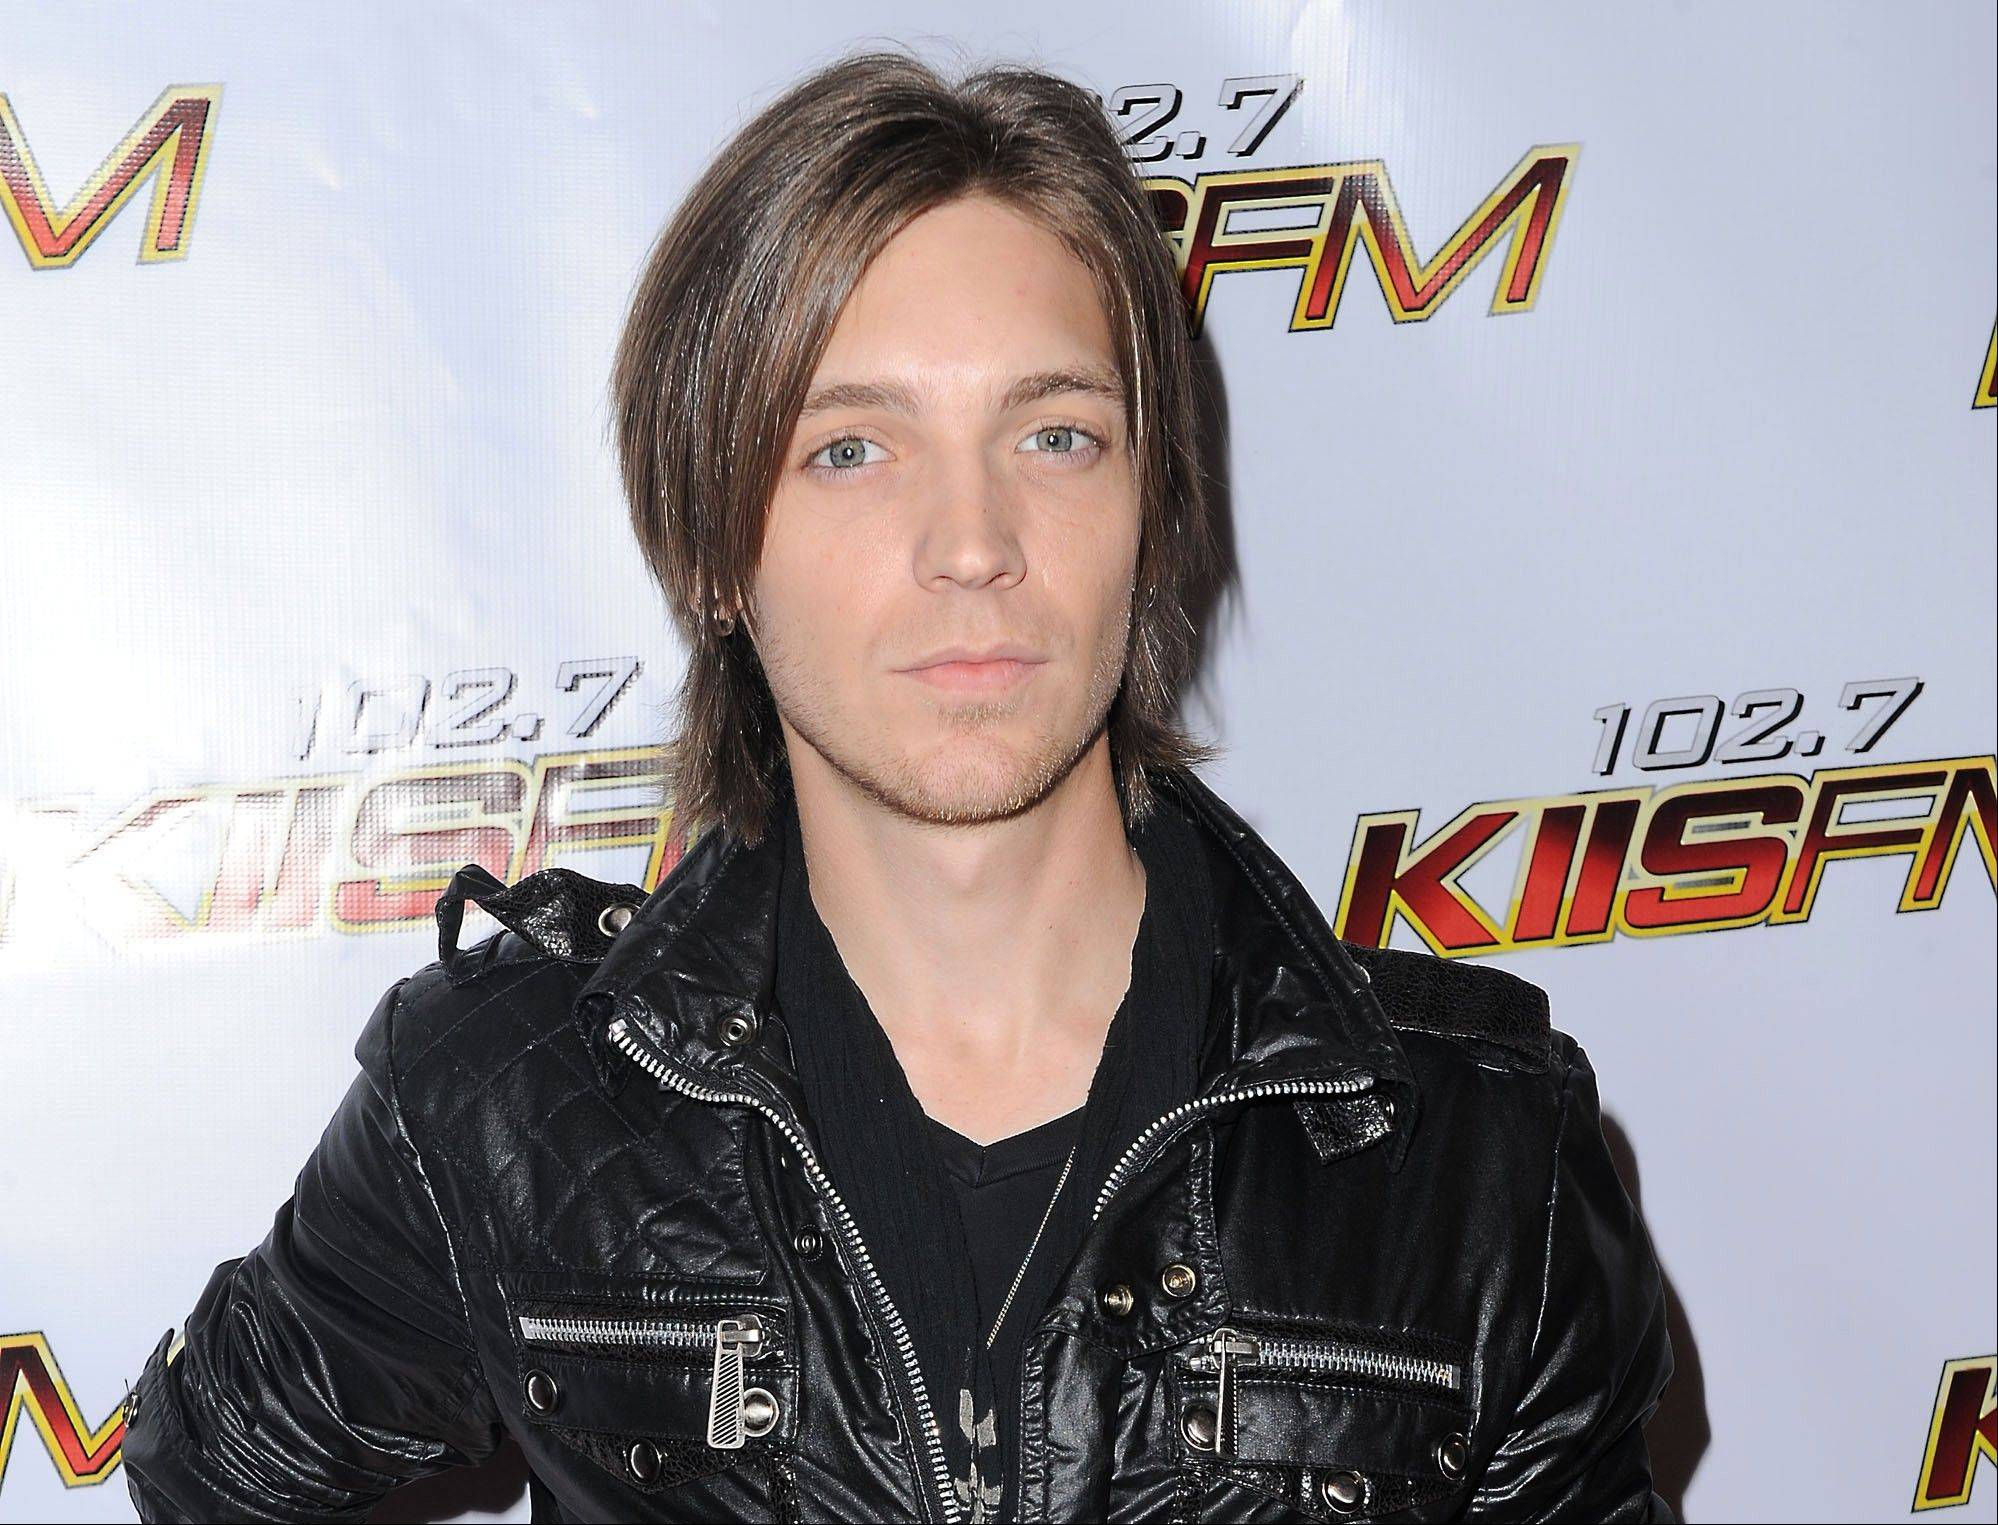 Alex Band, a member of the rock band The Calling, reports being abducted and robbed early Sunday after performing at a festival in Michigan.